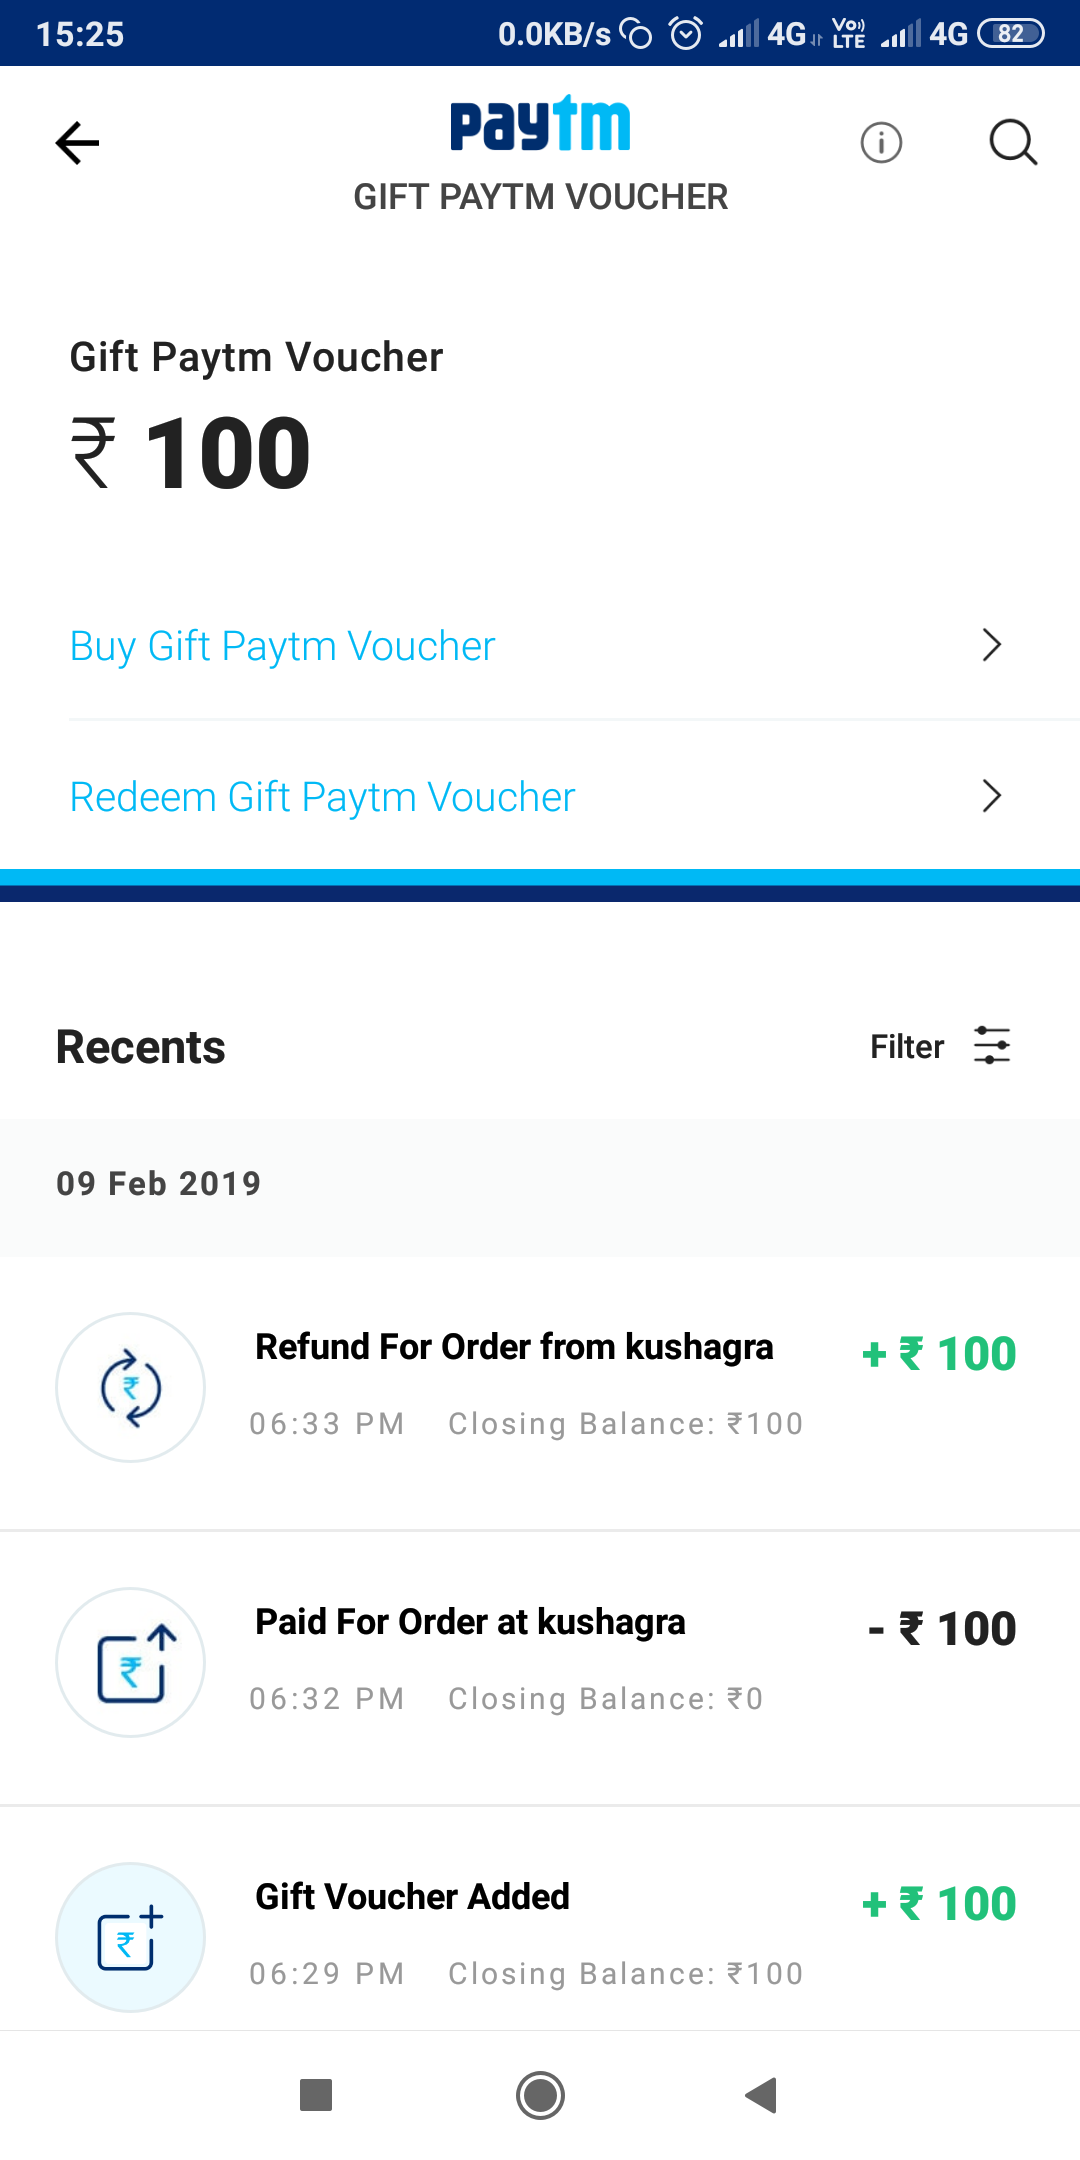 Now you can buy paytm vouchers on paytm, No Need of kyc